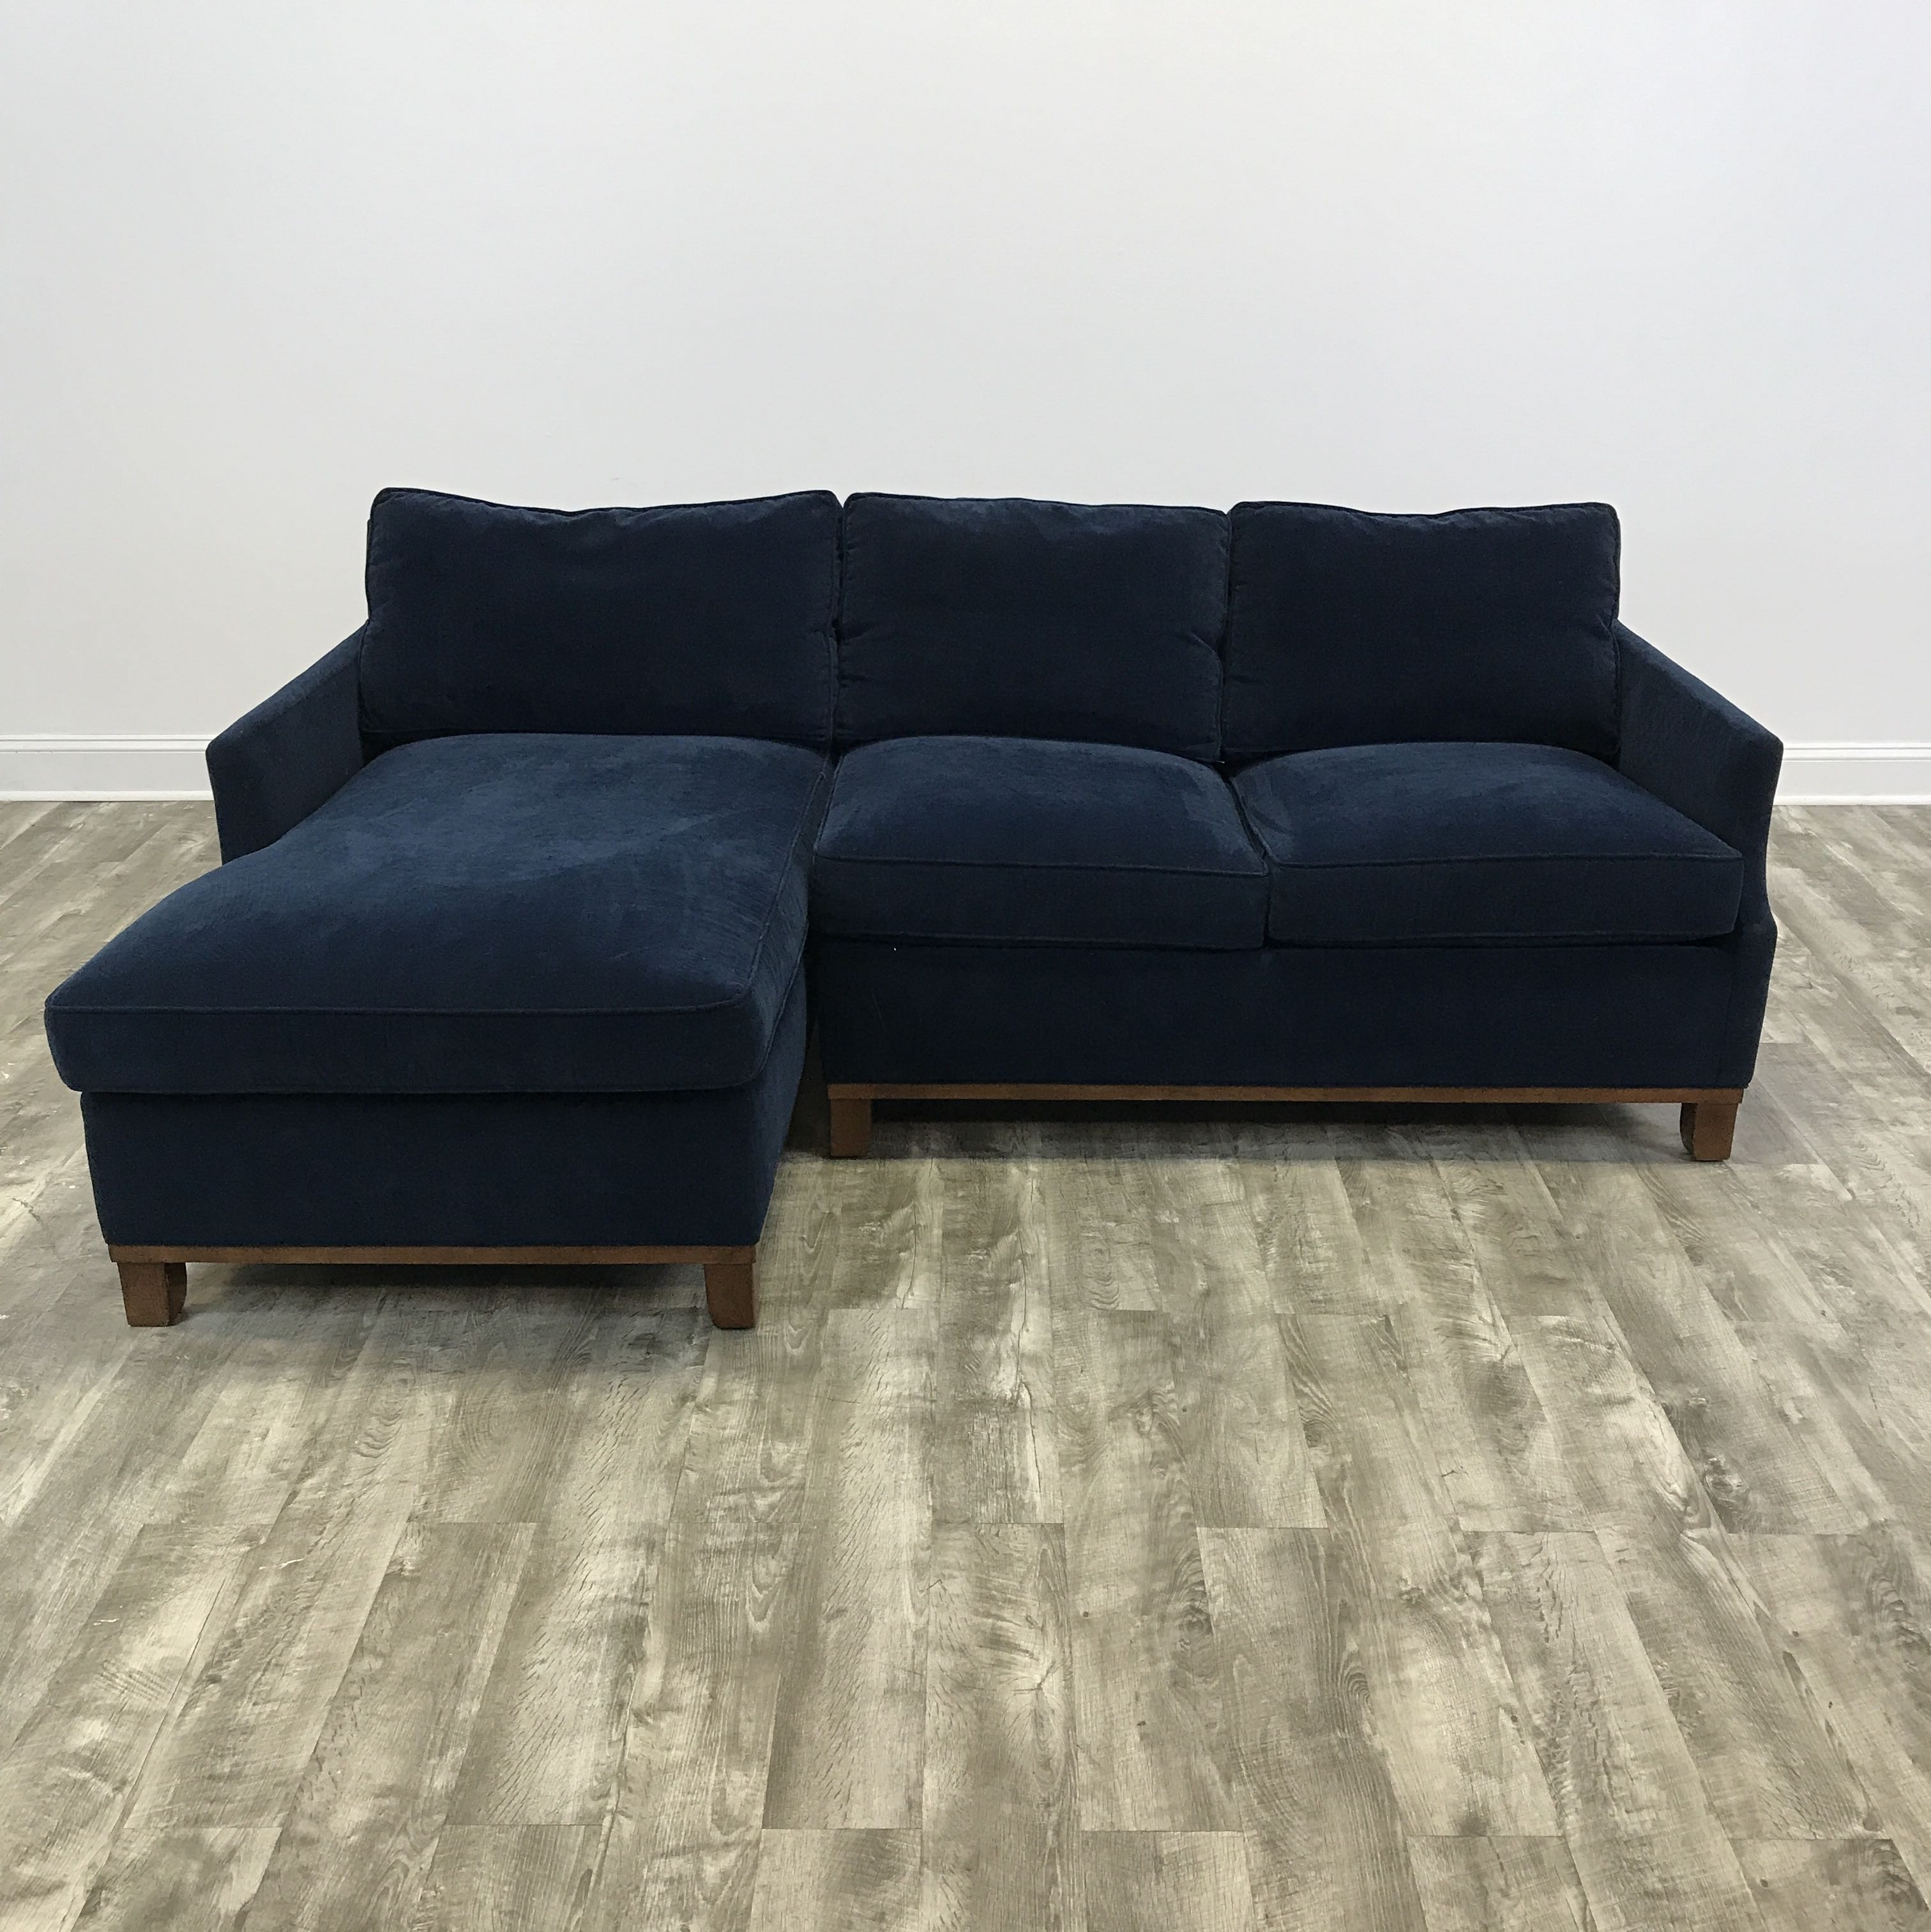 Navy Velvet Sectional – Intnl Wildrover Inside Delano 2 Piece Sectionals With Raf Oversized Chaise (View 25 of 25)